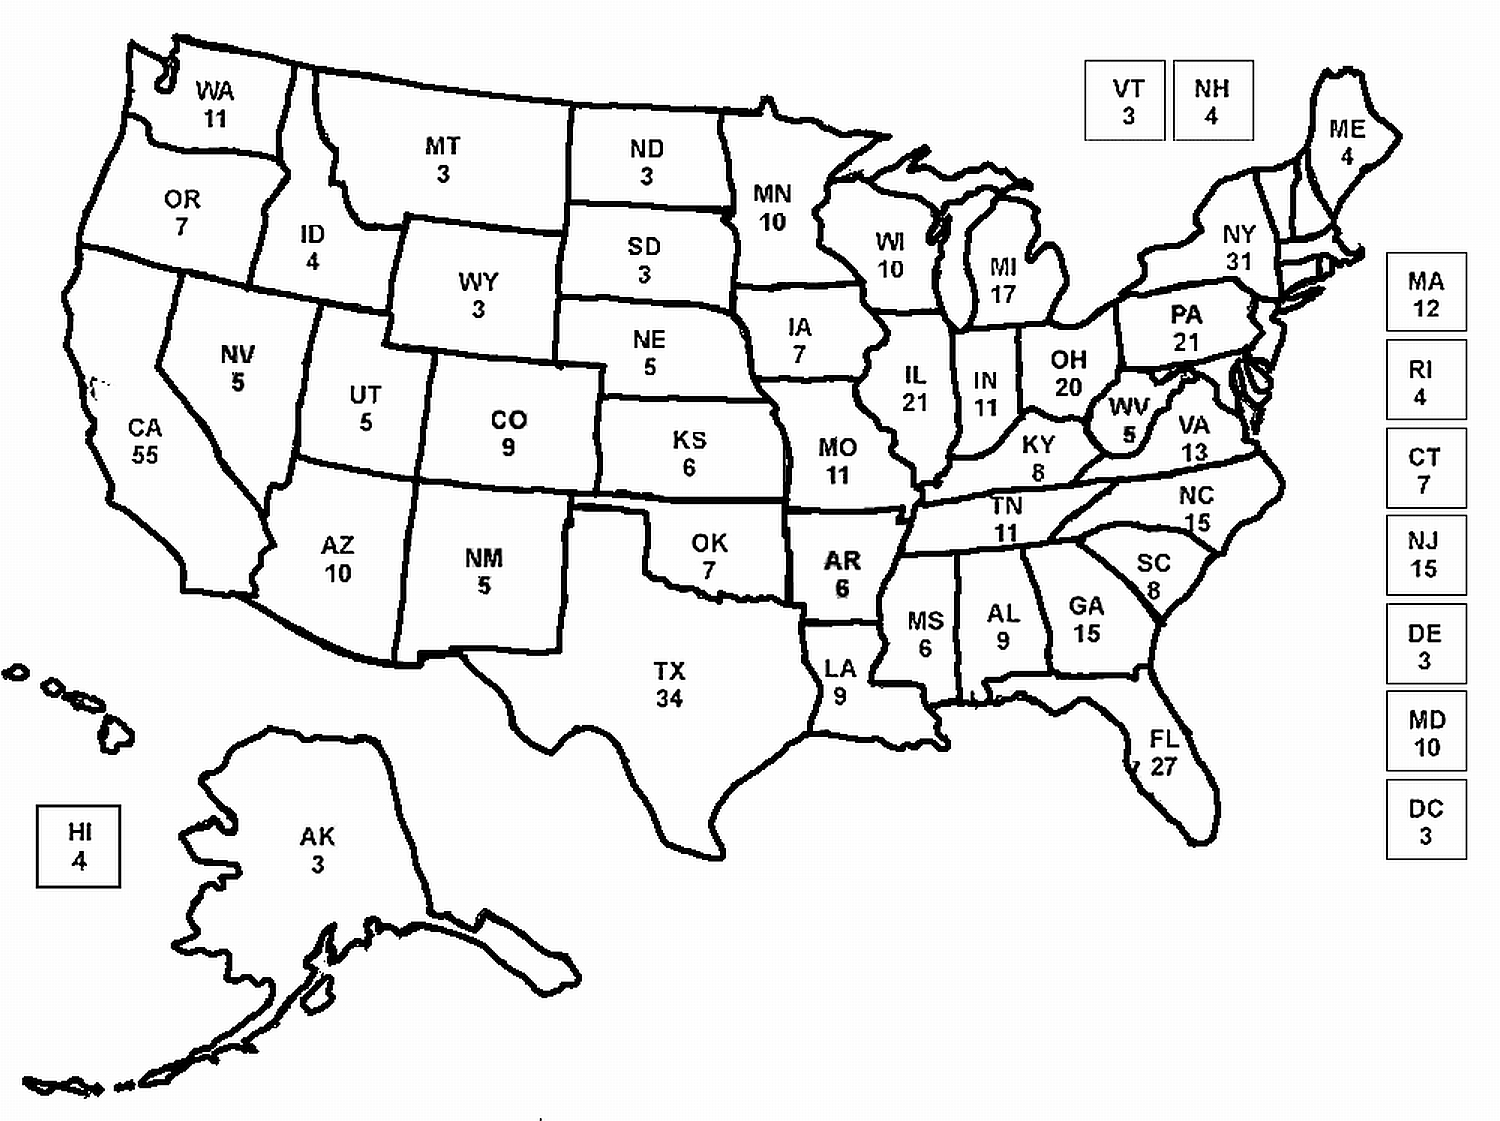 coloring page map of the united states united states coloring pages kidsuki states of map the page united coloring